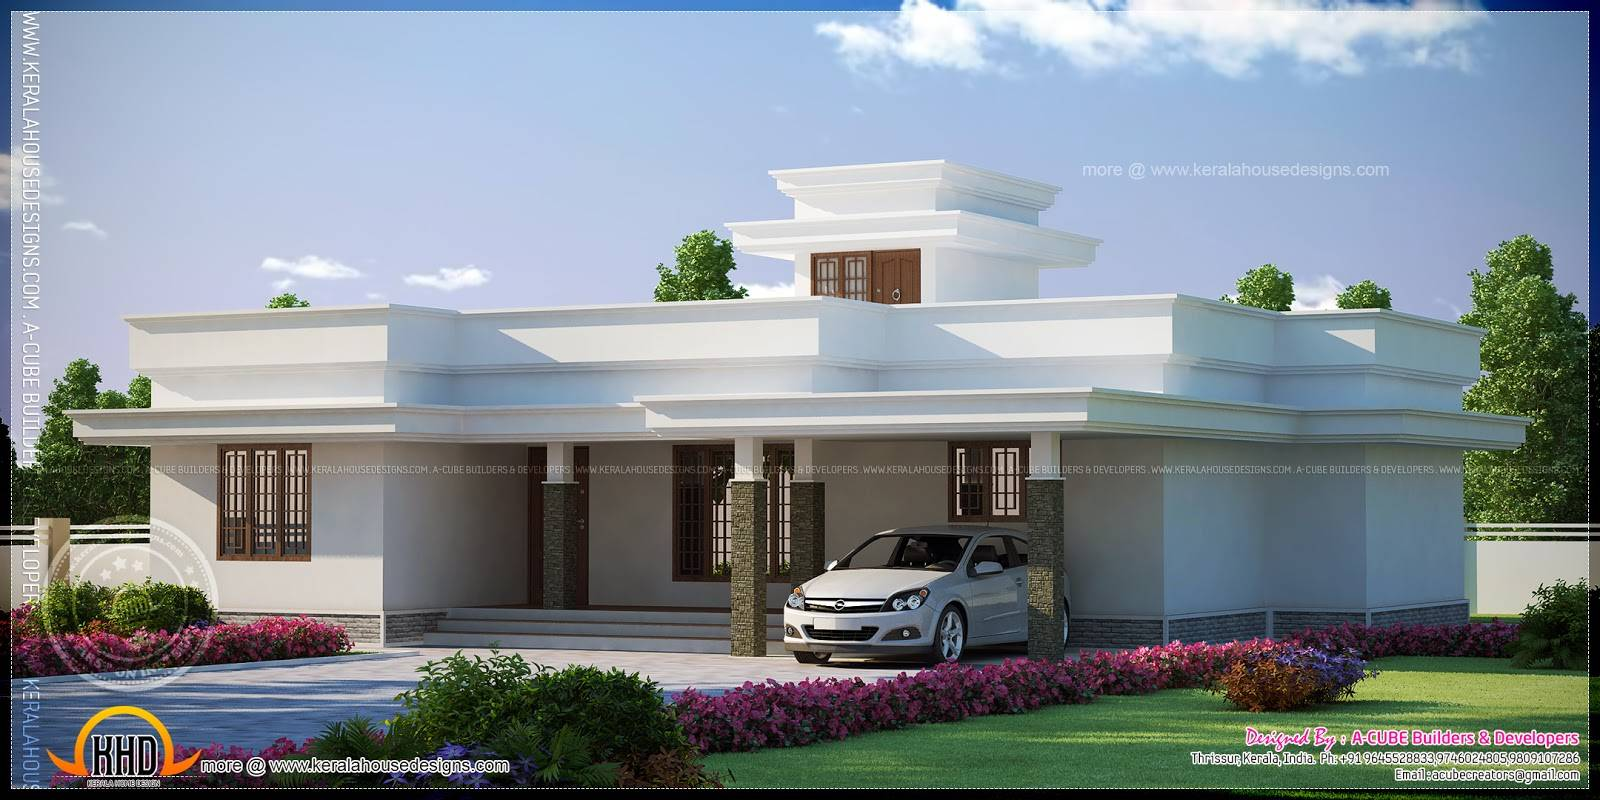 House Plans Flat Roof Roofs House Plans 65424